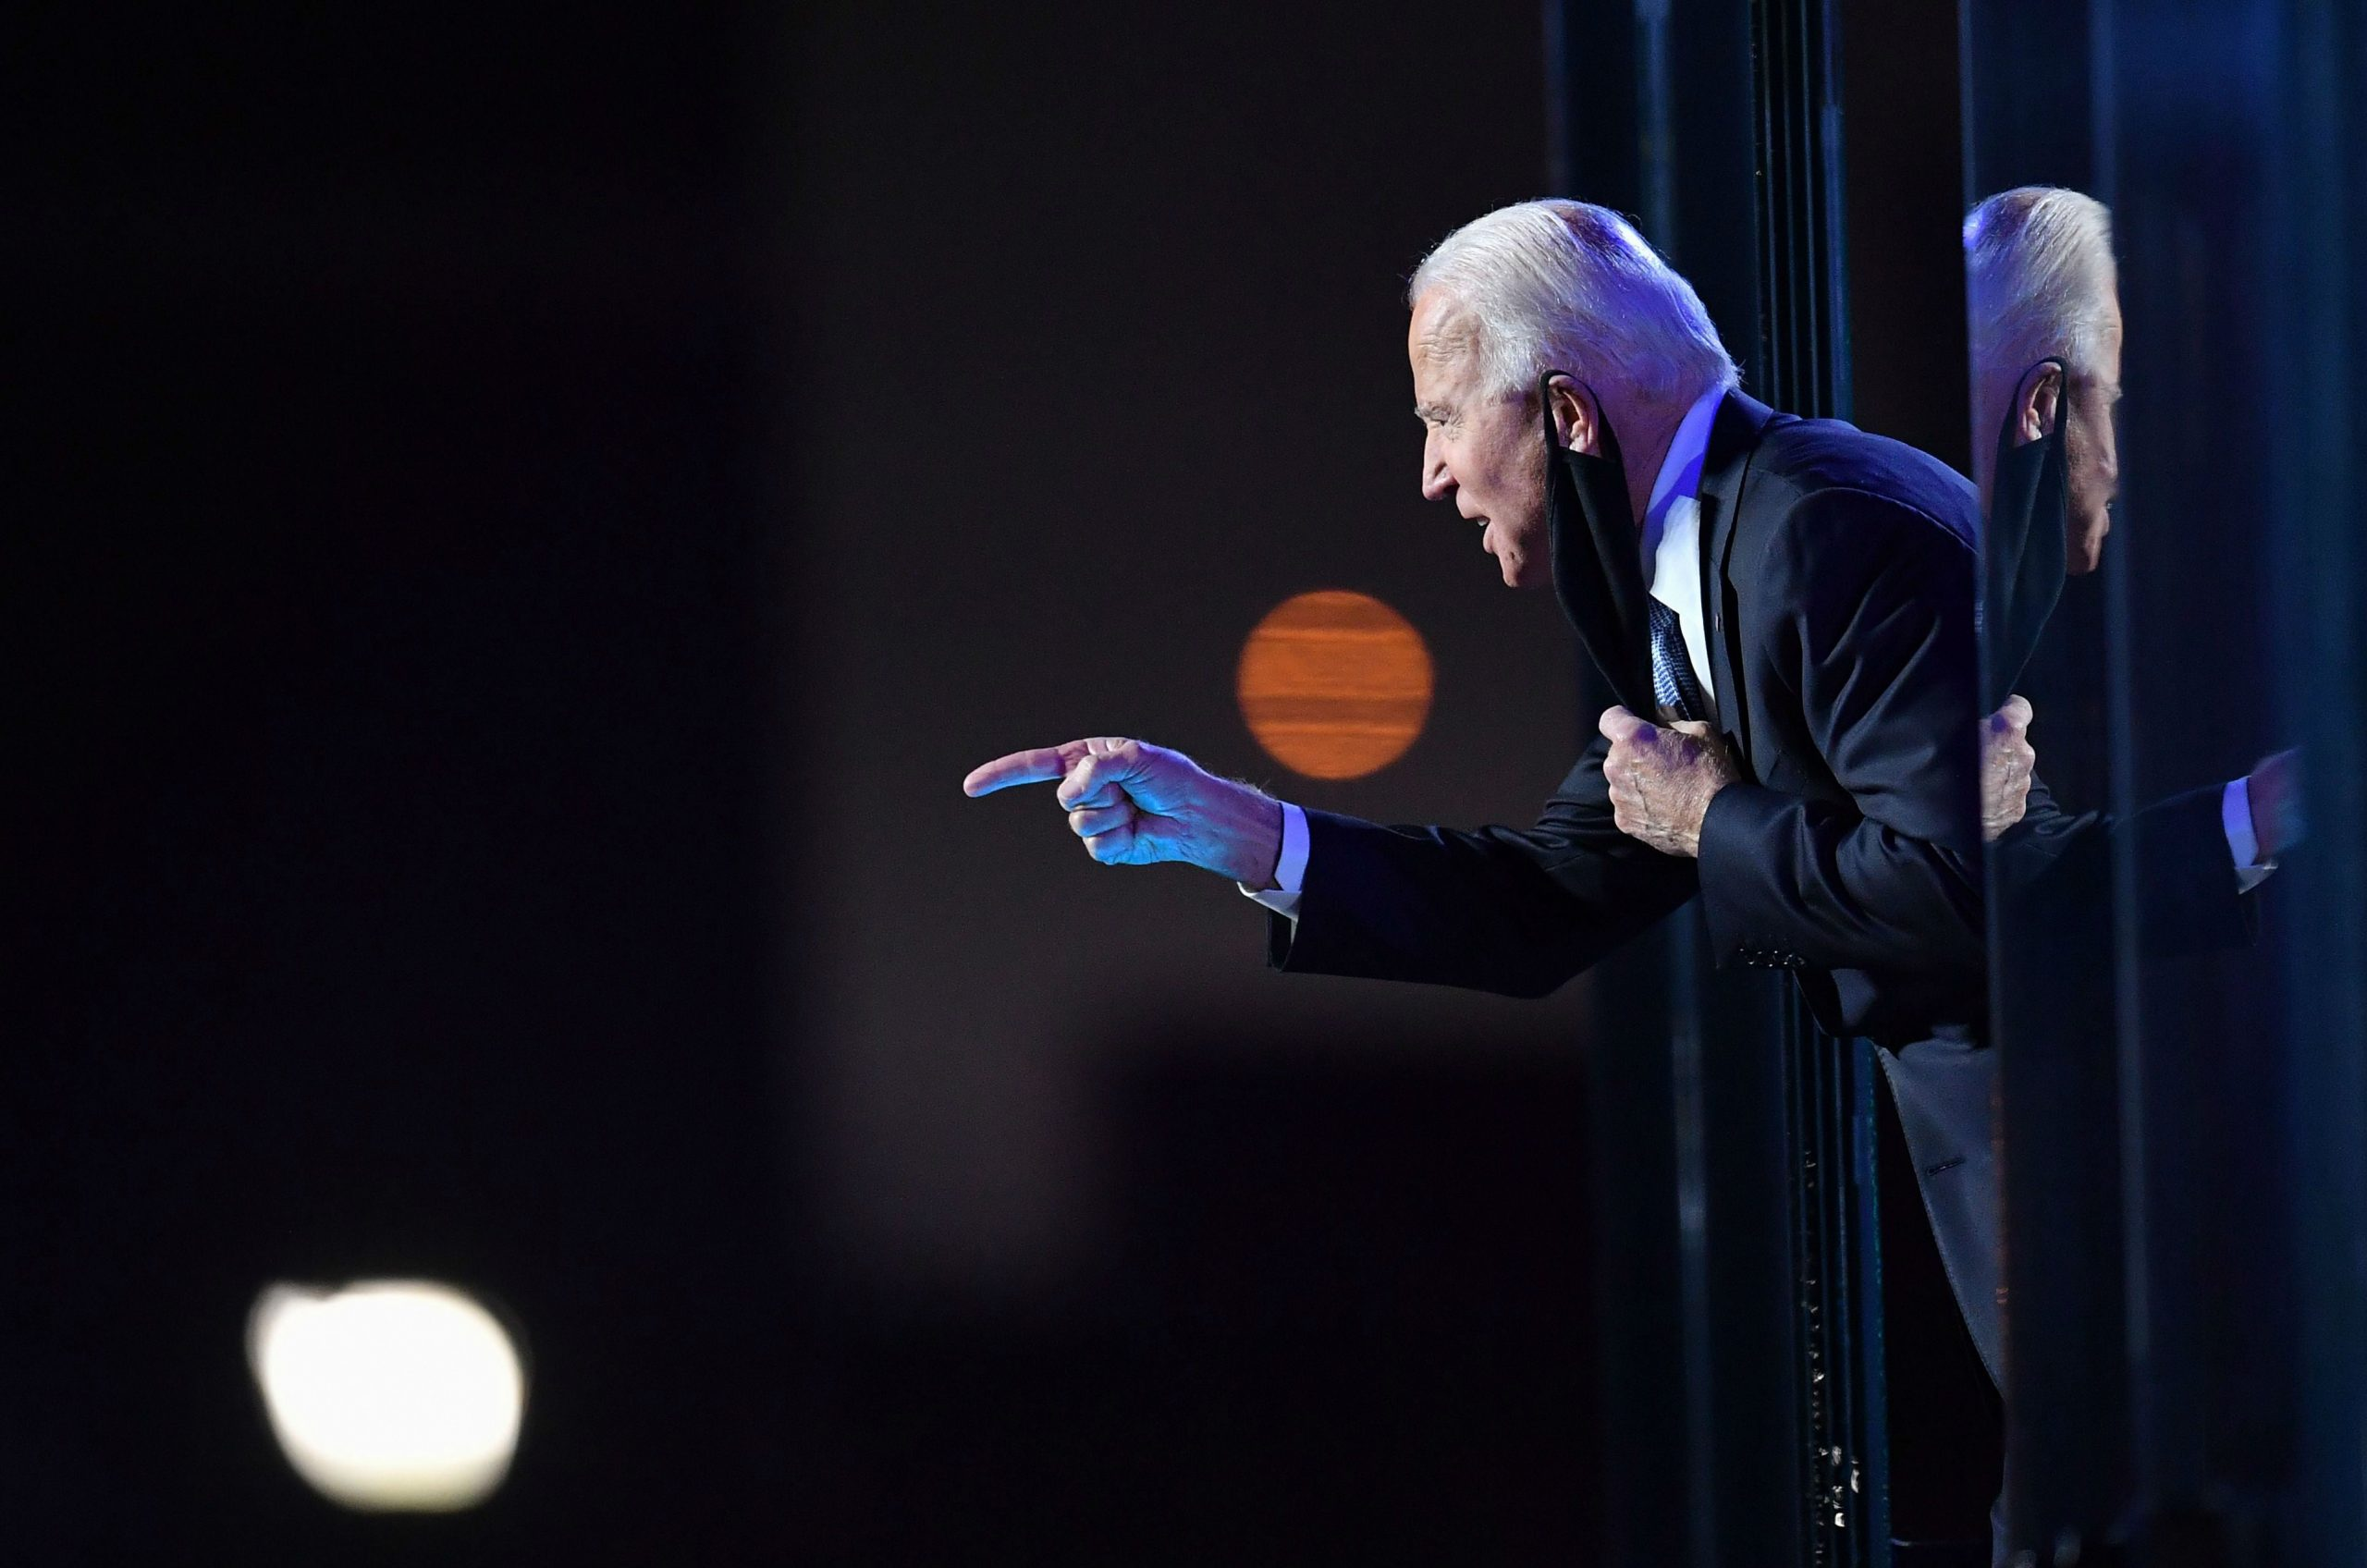 Joe Biden's speech: The President-elect Reaches Out to Trump Supporters